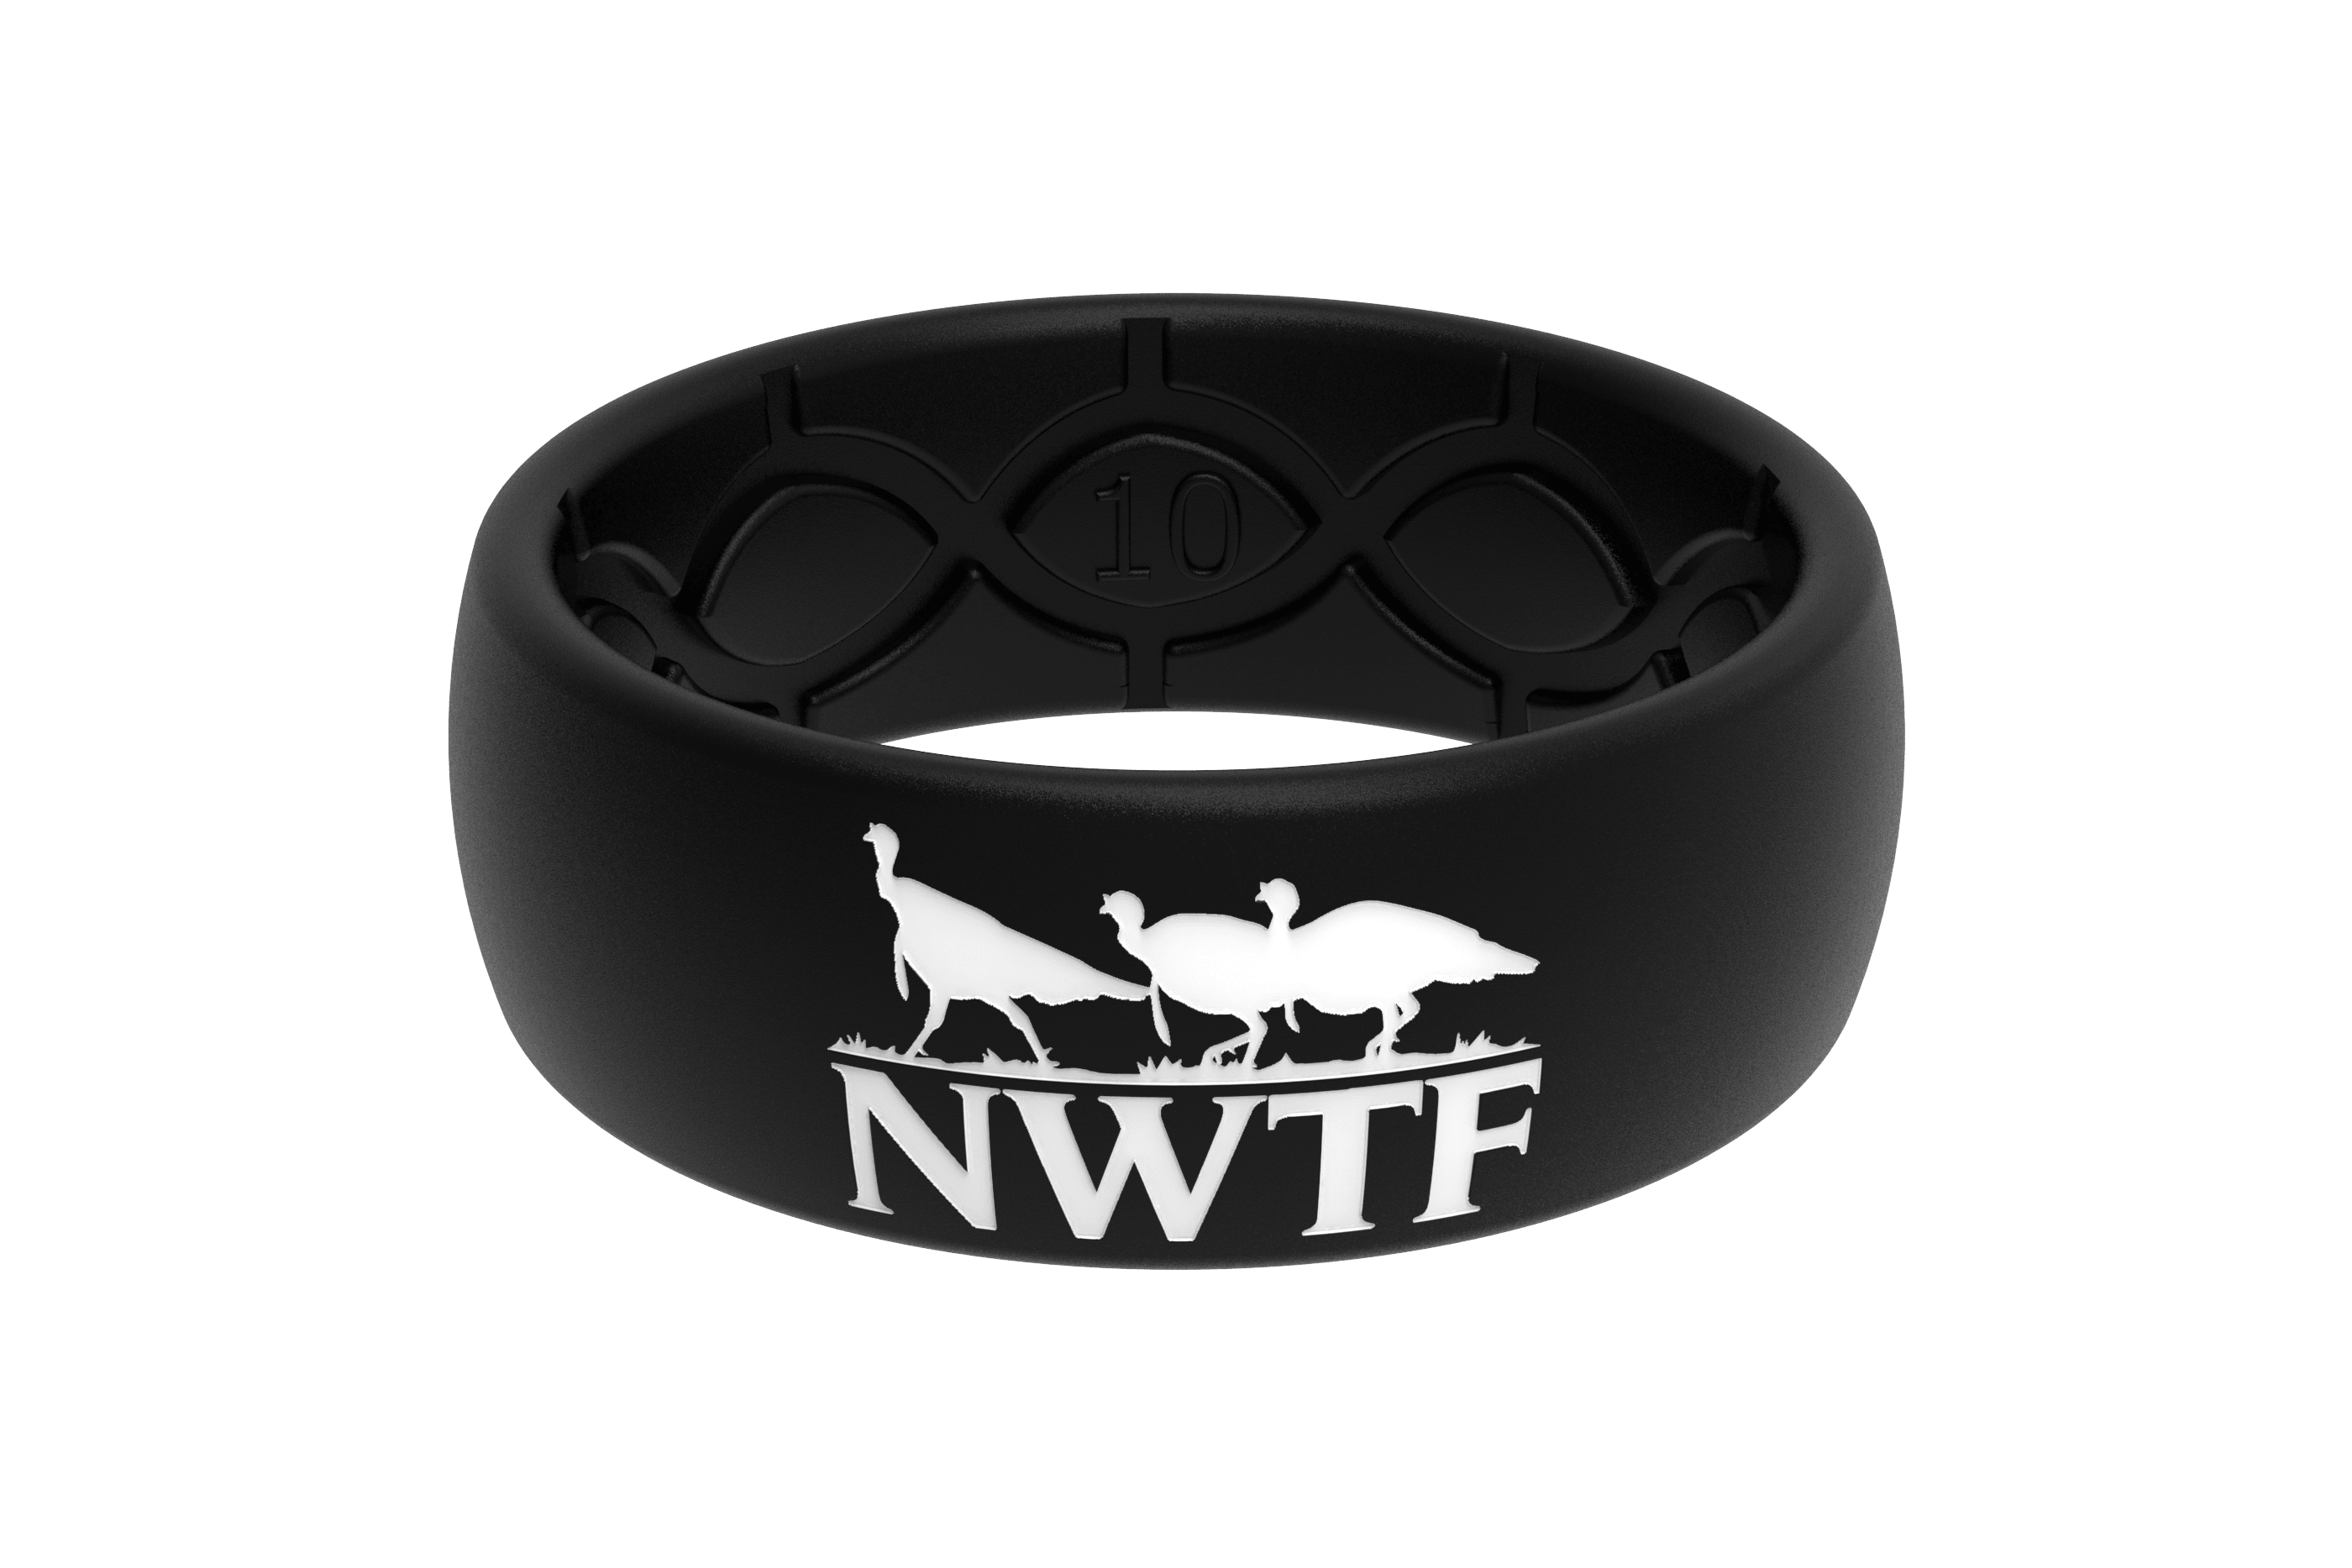 Original NWTF Black Logo  viewed front on